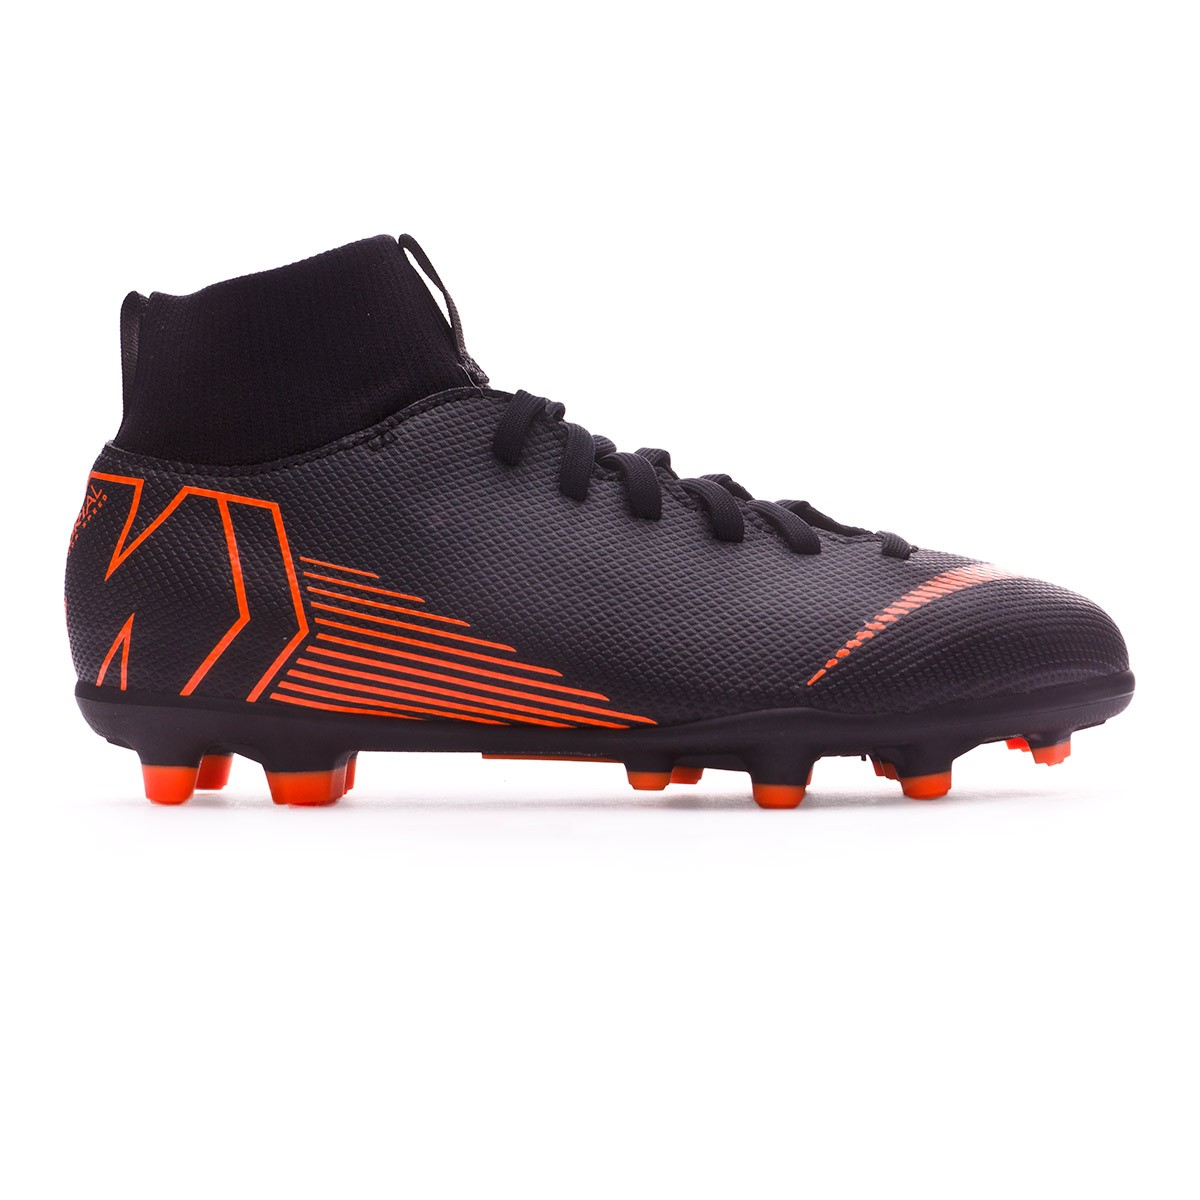 lowest price 276eb 6fed7 Boot Nike Kids Mercurial Superfly VI Club MG Black-Total orange-White -  Leaked soccer